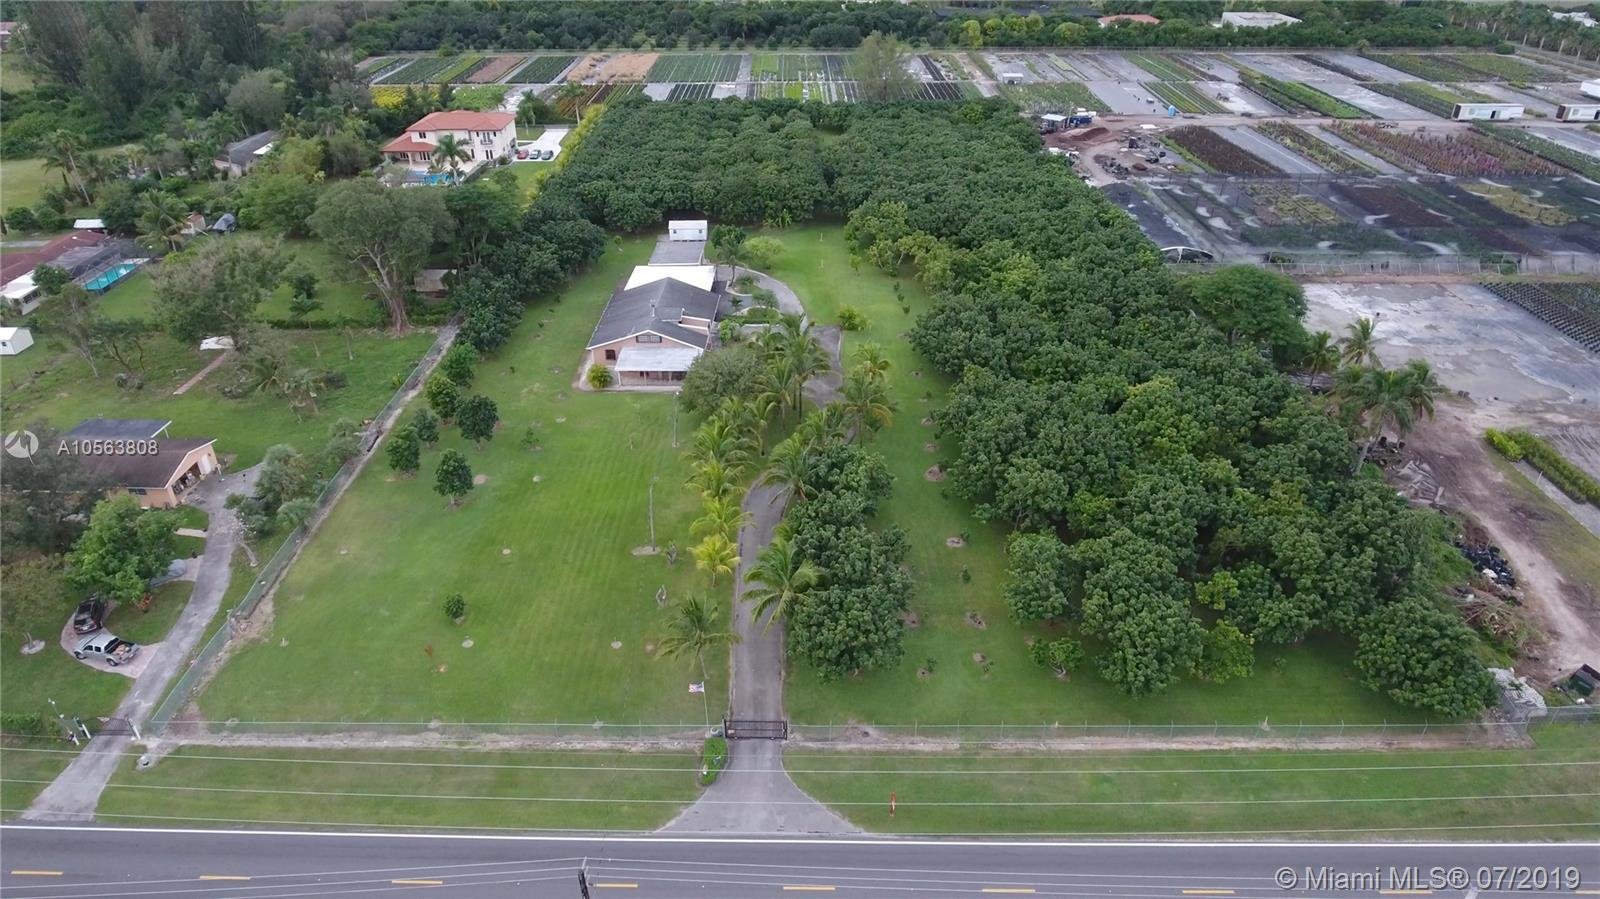 25000 SW 147th Ave, Homestead, FL 33032 - Homestead, FL real estate listing